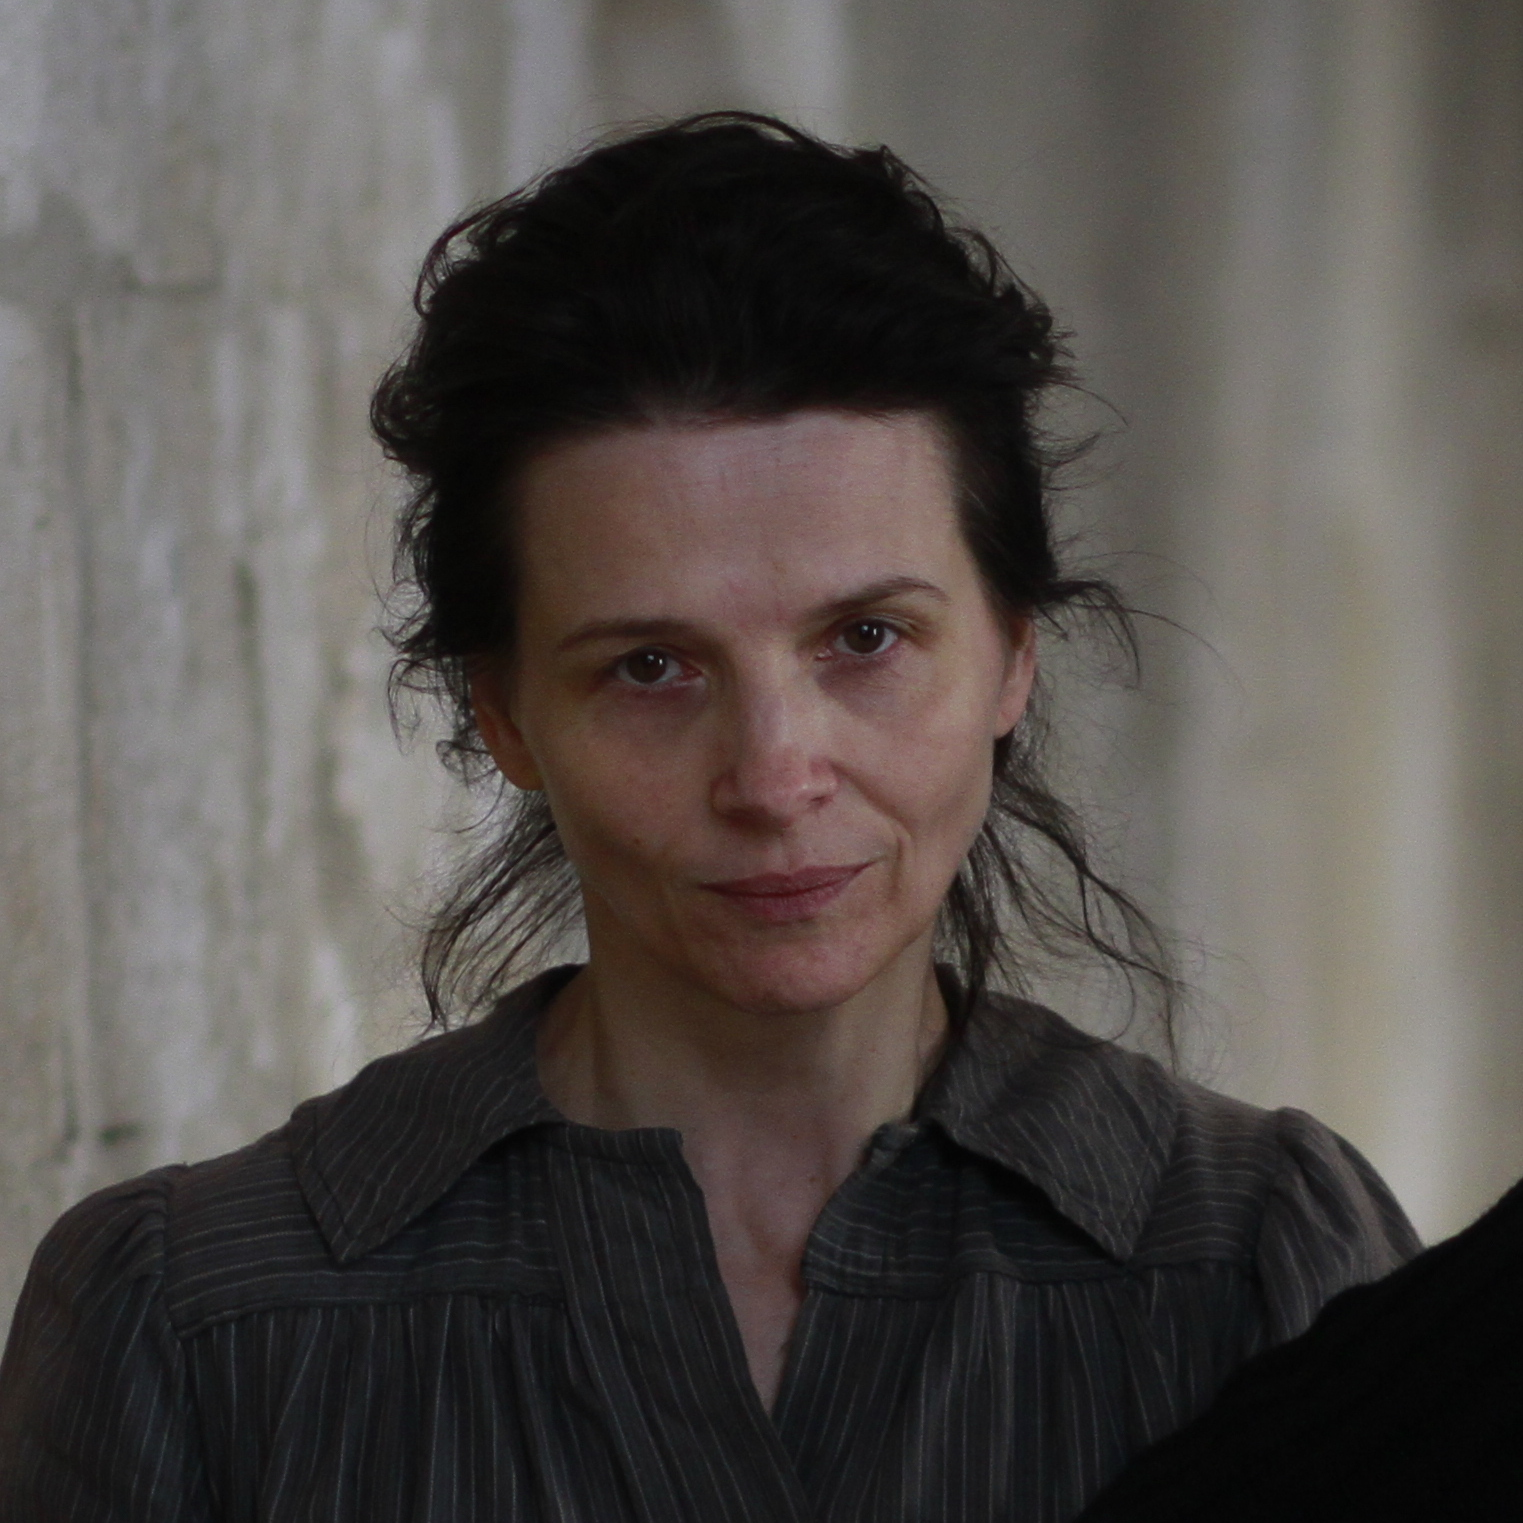 Juliette Binoche as Camille Claudel and Alexandra Lucas as Mademoiselle Lucas in Camille Claudel 1915.